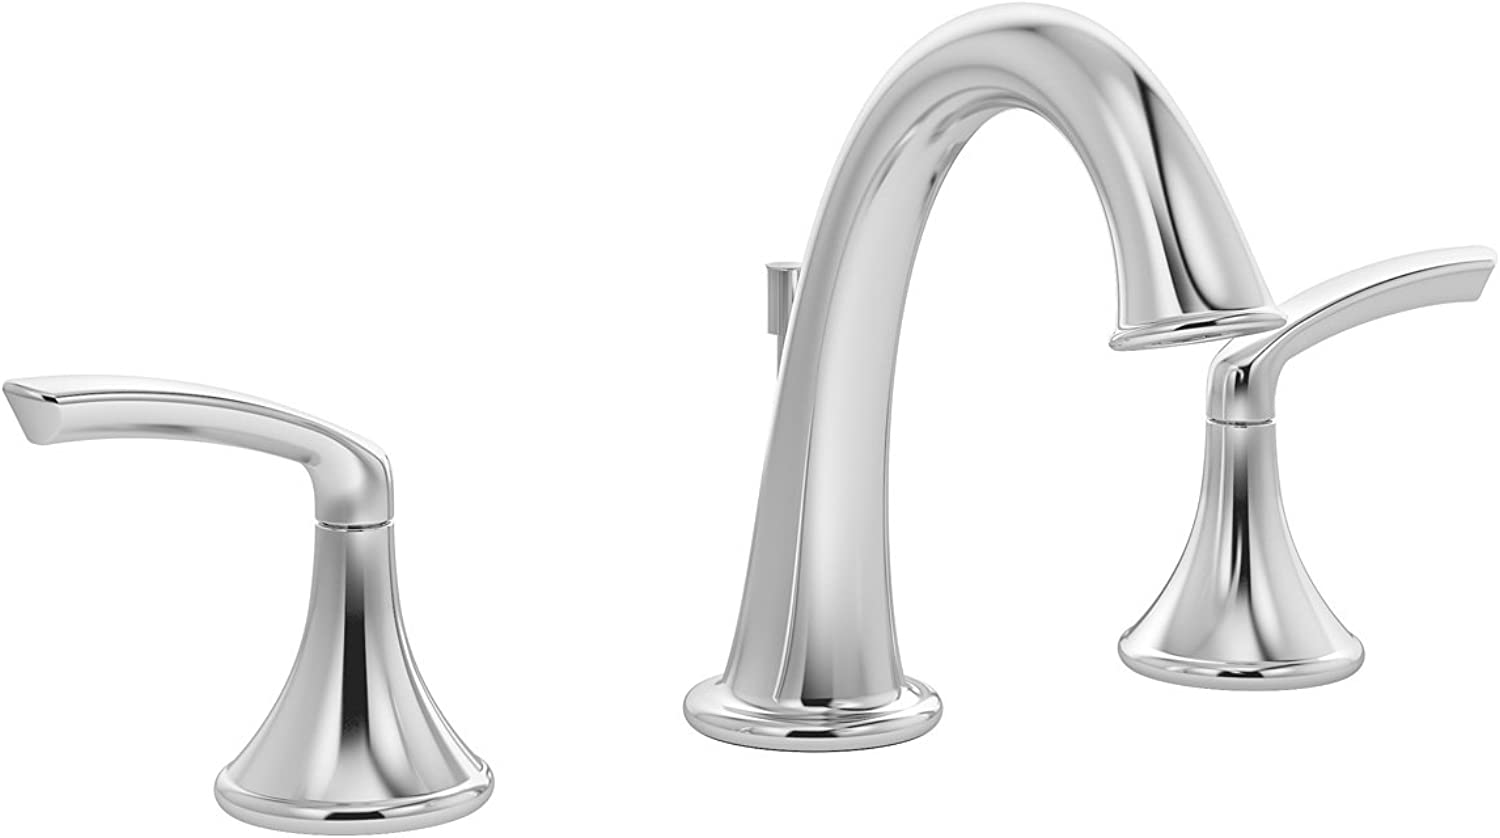 Symmons Elm Two-Handle 8-16 Inch Widespread Bathroom Faucet with Pop-Up Drain & Lift Rod, Chrome (SLW-5512-1.5)